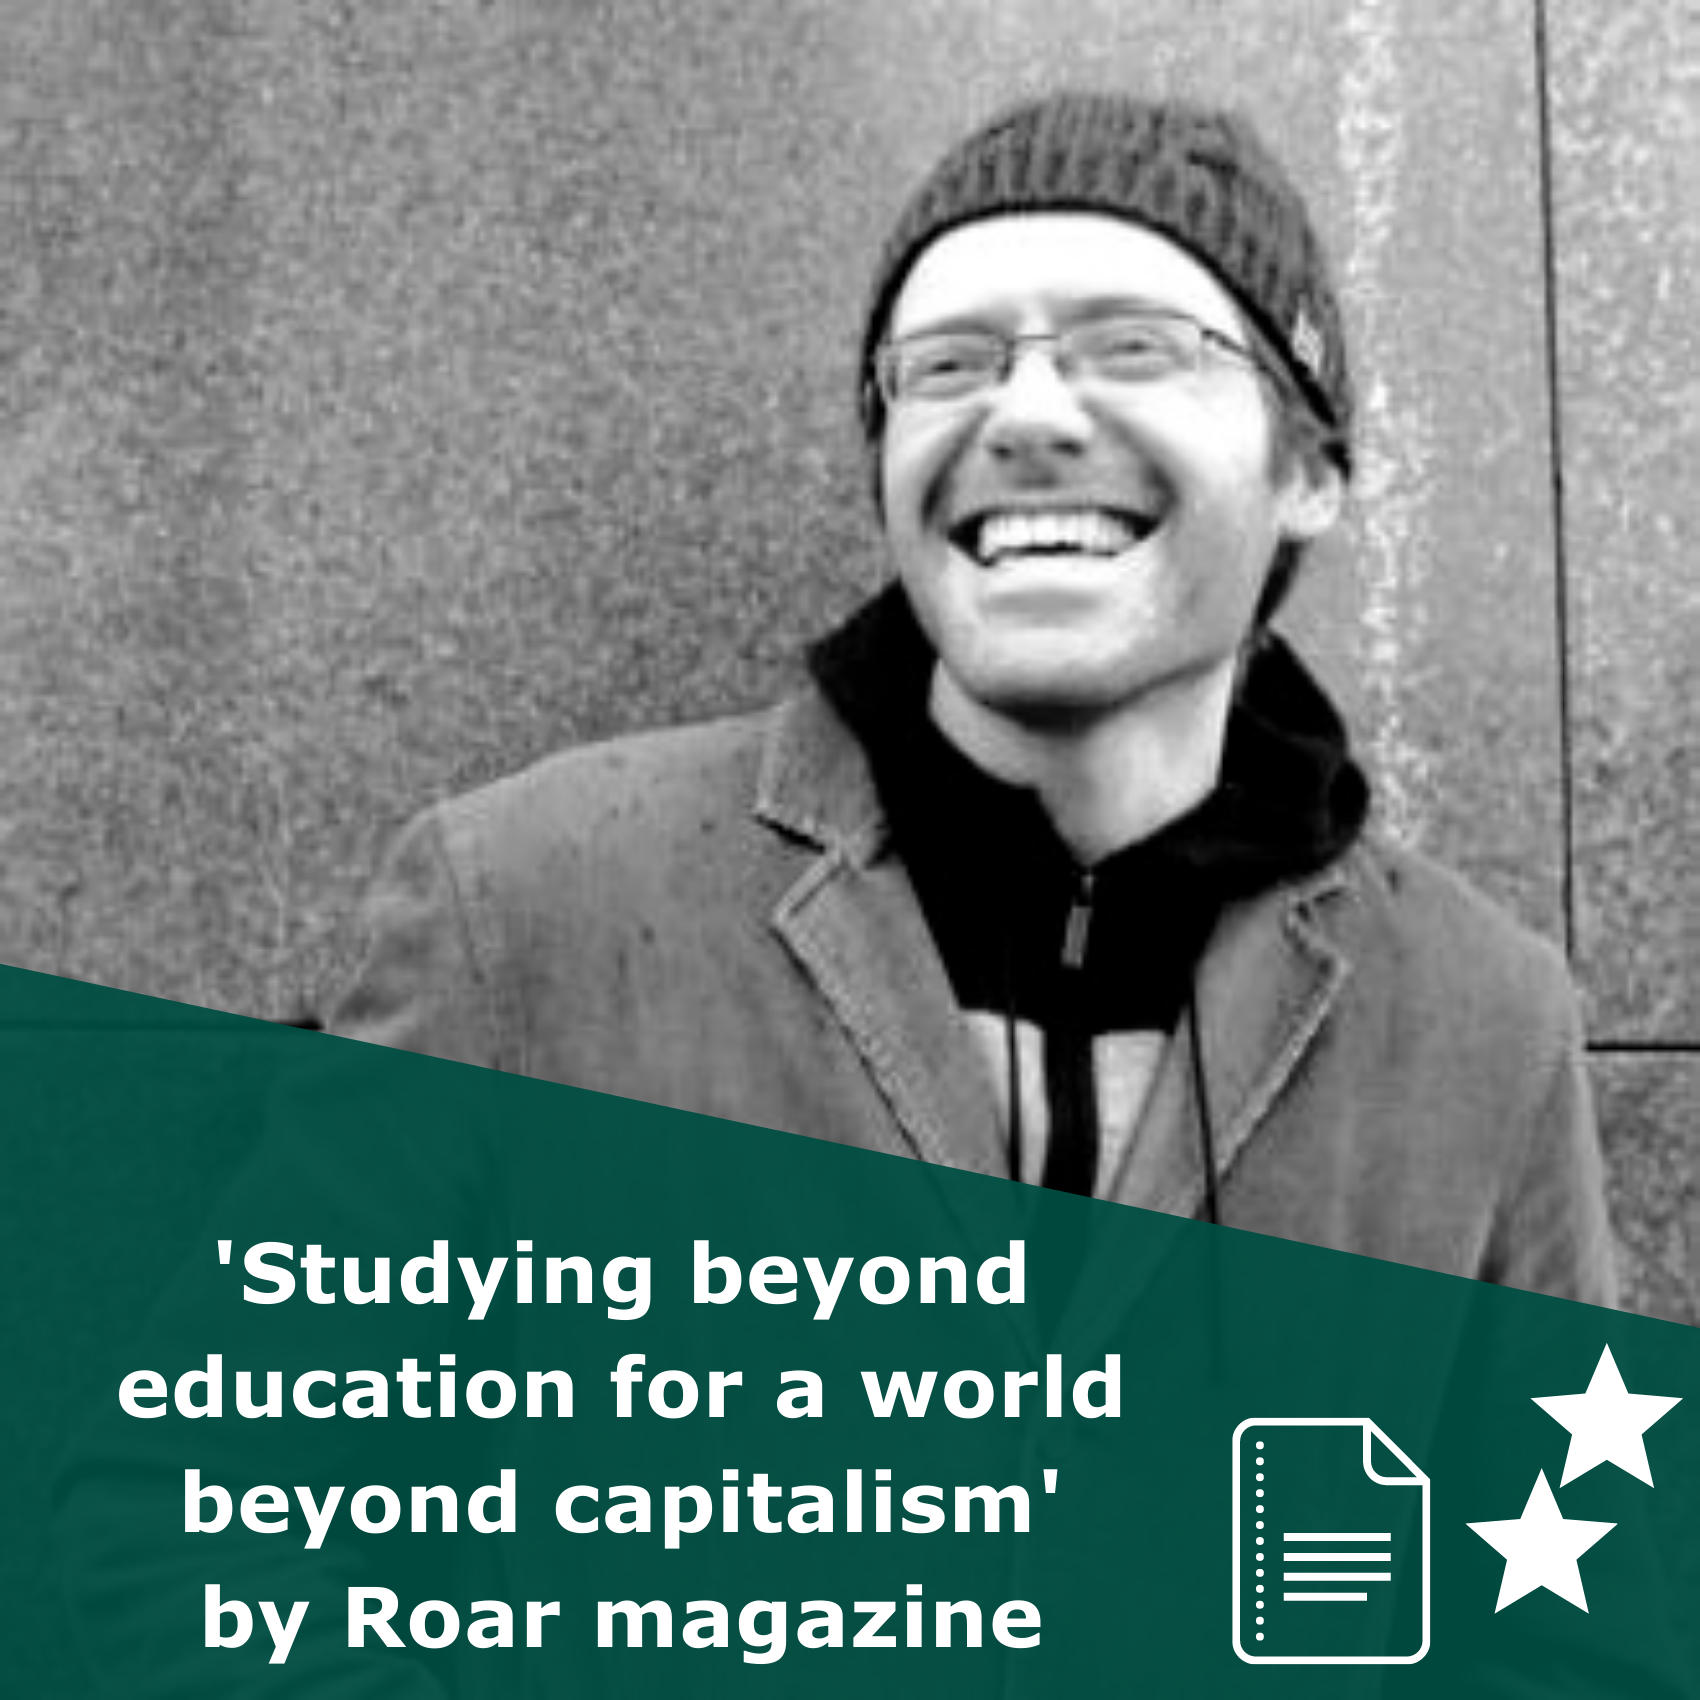 Picture of Eli Meyerhoff, the author, in black and white. Title Studying beyond education for a world beyond capitalism. It is an article rated 2 stars